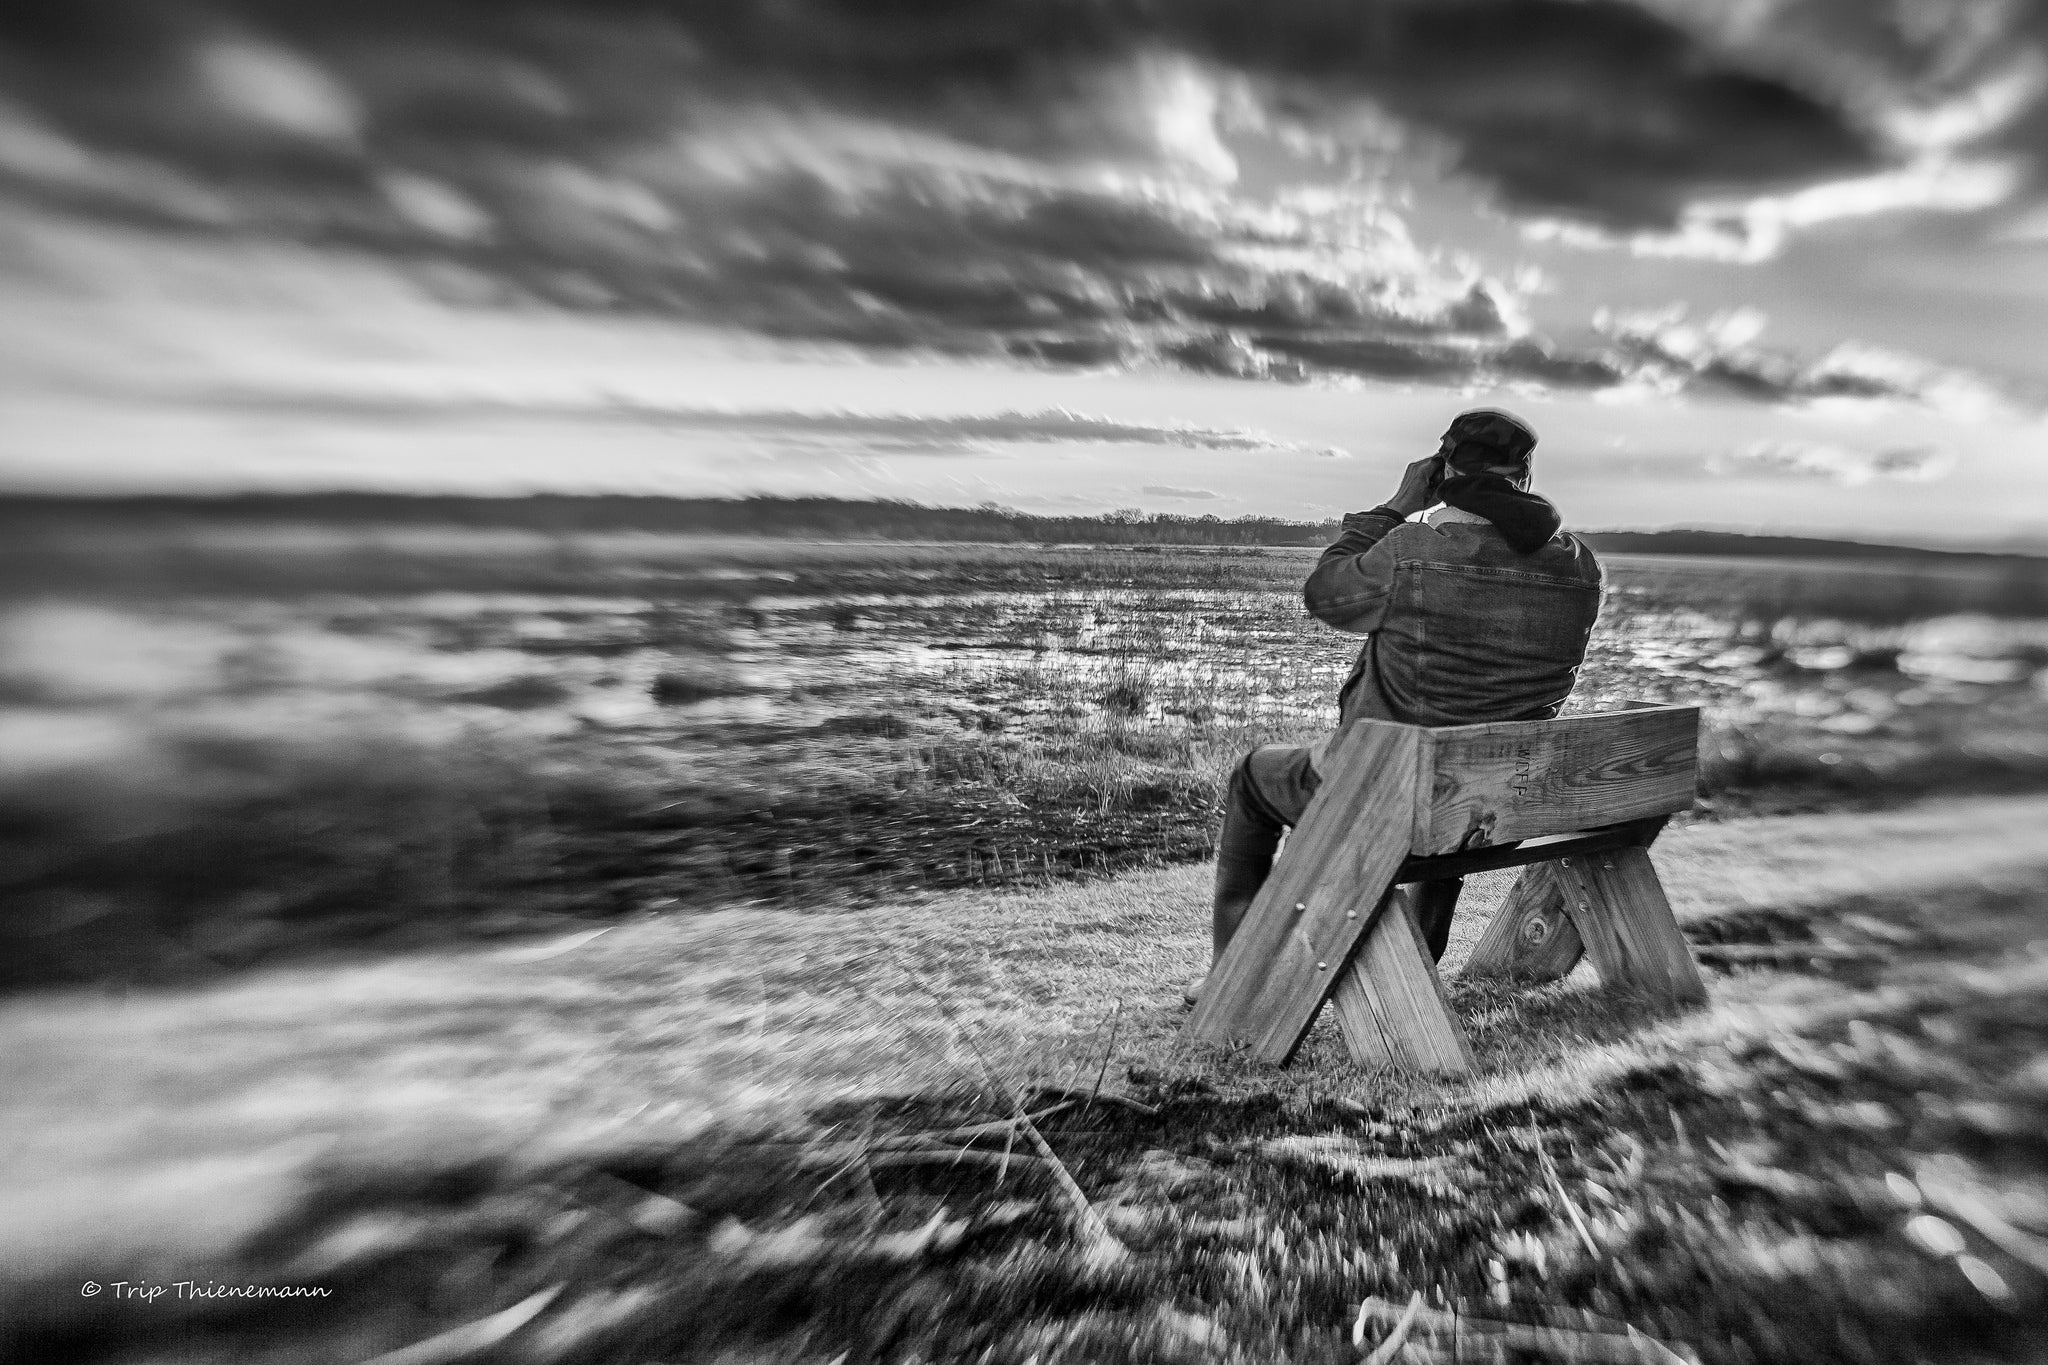 man sitting on a wooden bench looking out at the plains black and white high contrast Lensbaby featured photos